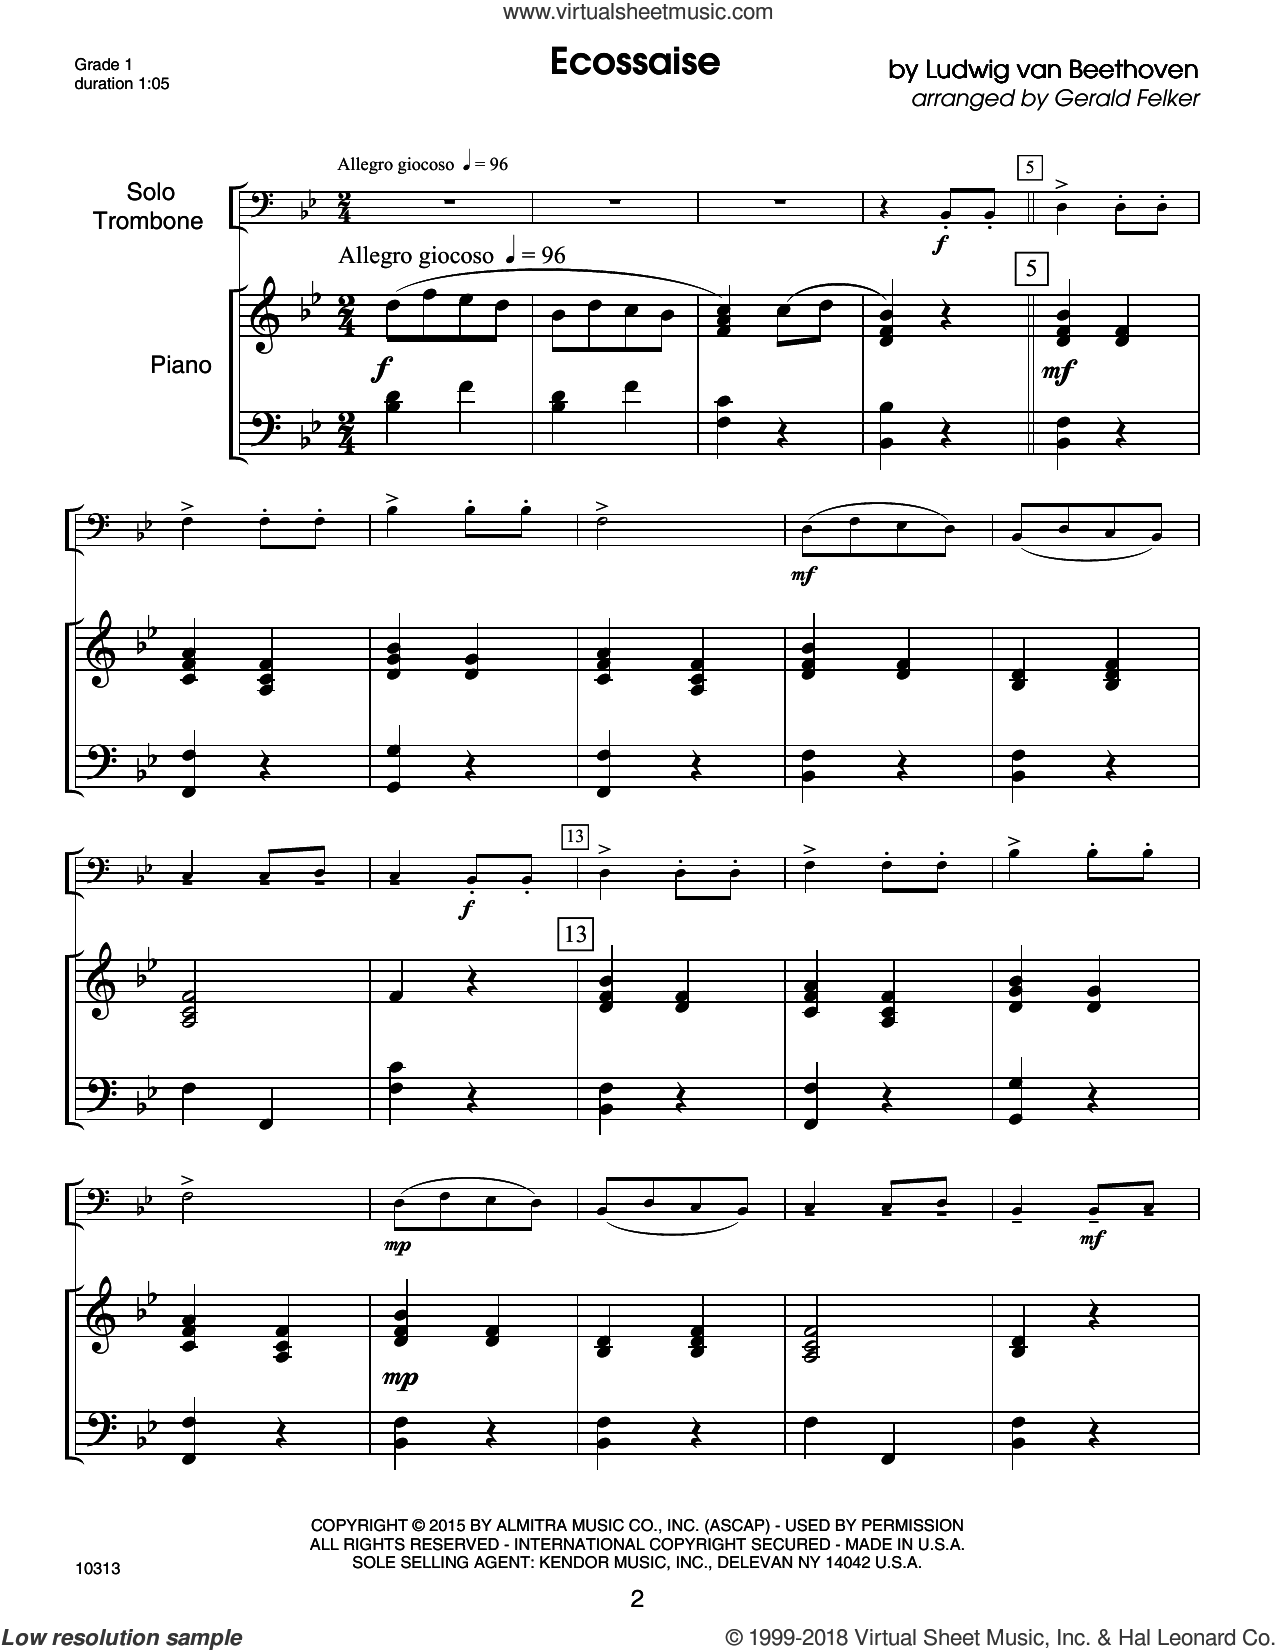 Kendor Debut Solos - Trombone - Piano Accompaniment sheet music for trombone and piano by Gerald Felker